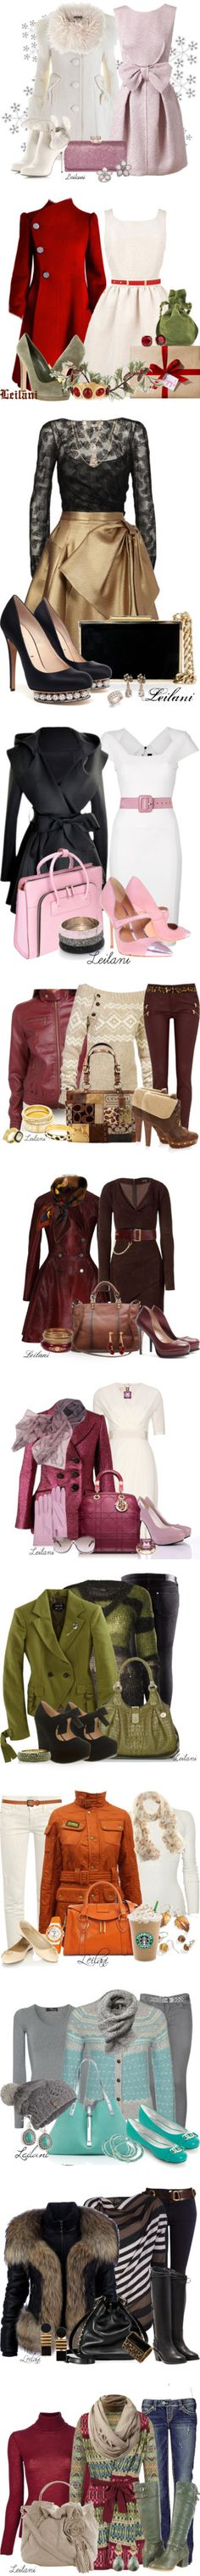 """""""Winter warm & Holiday collection"""" by leilani-almazan ❤ liked on Polyvore"""